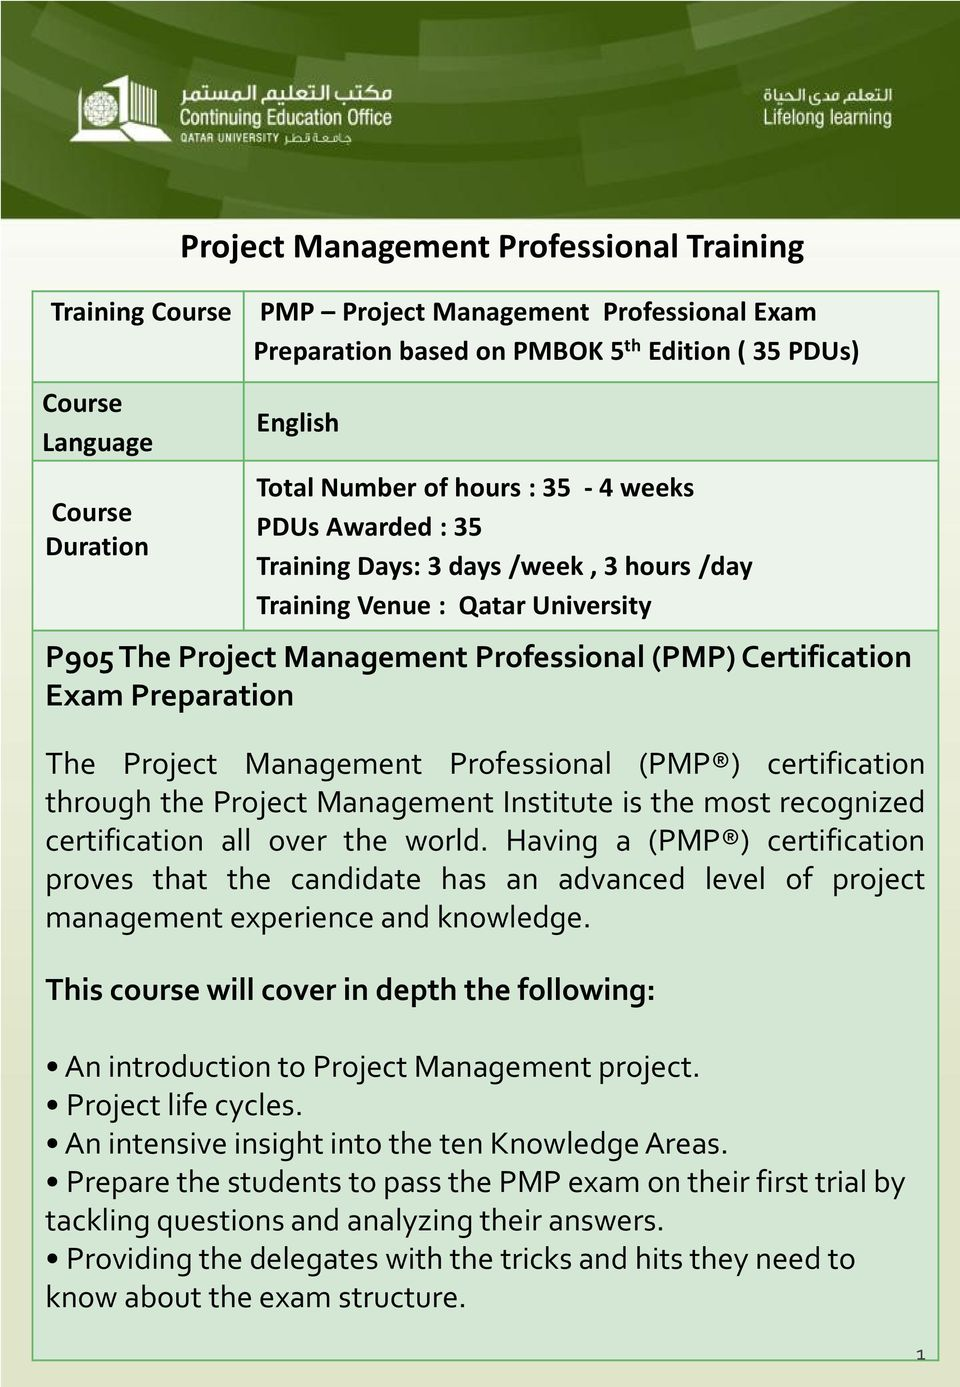 Preparation The Project Management Professional (PMP ) certification through the Project Management Institute is the most recognized certification all over the world.